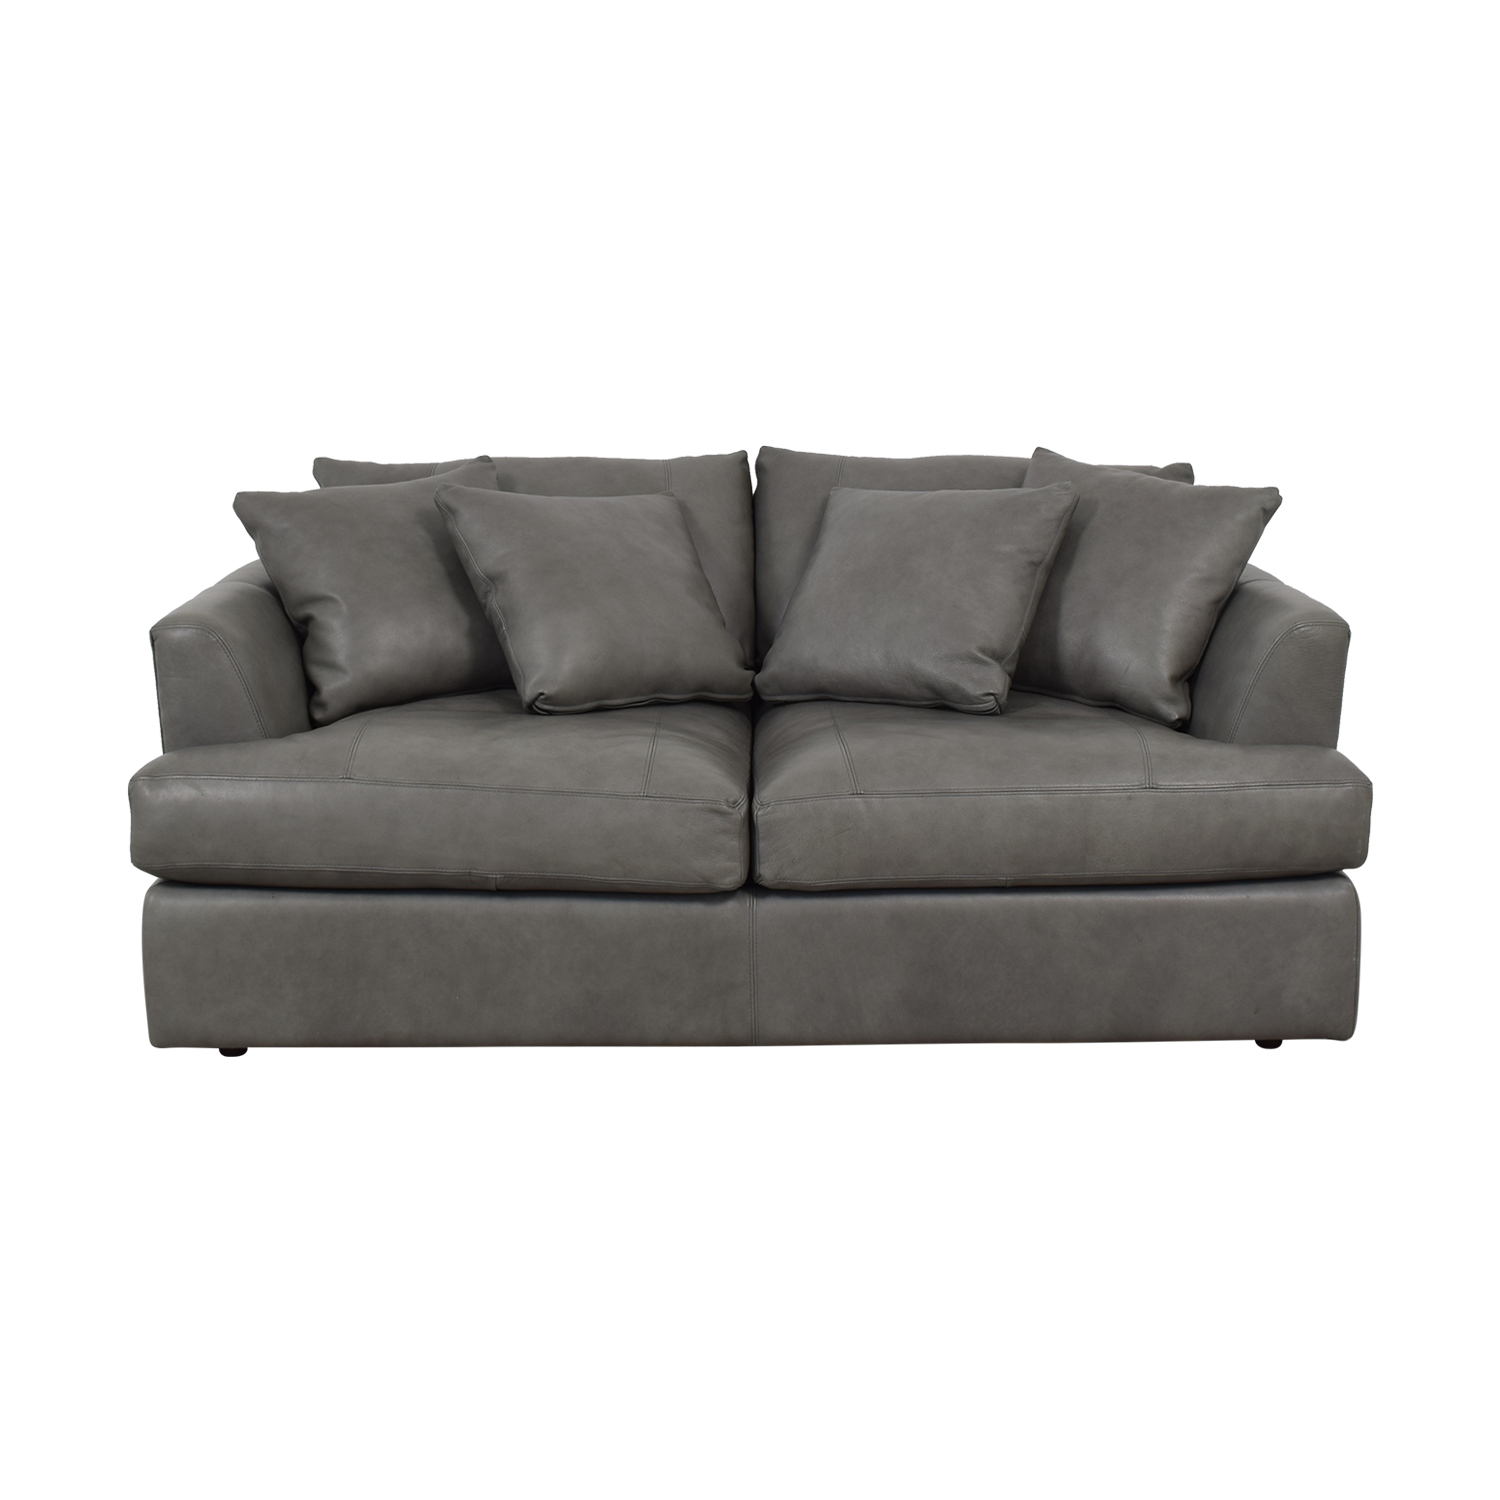 82% OFF - Arhaus Arhaus Emory Deep Leather Sofa / Sofas